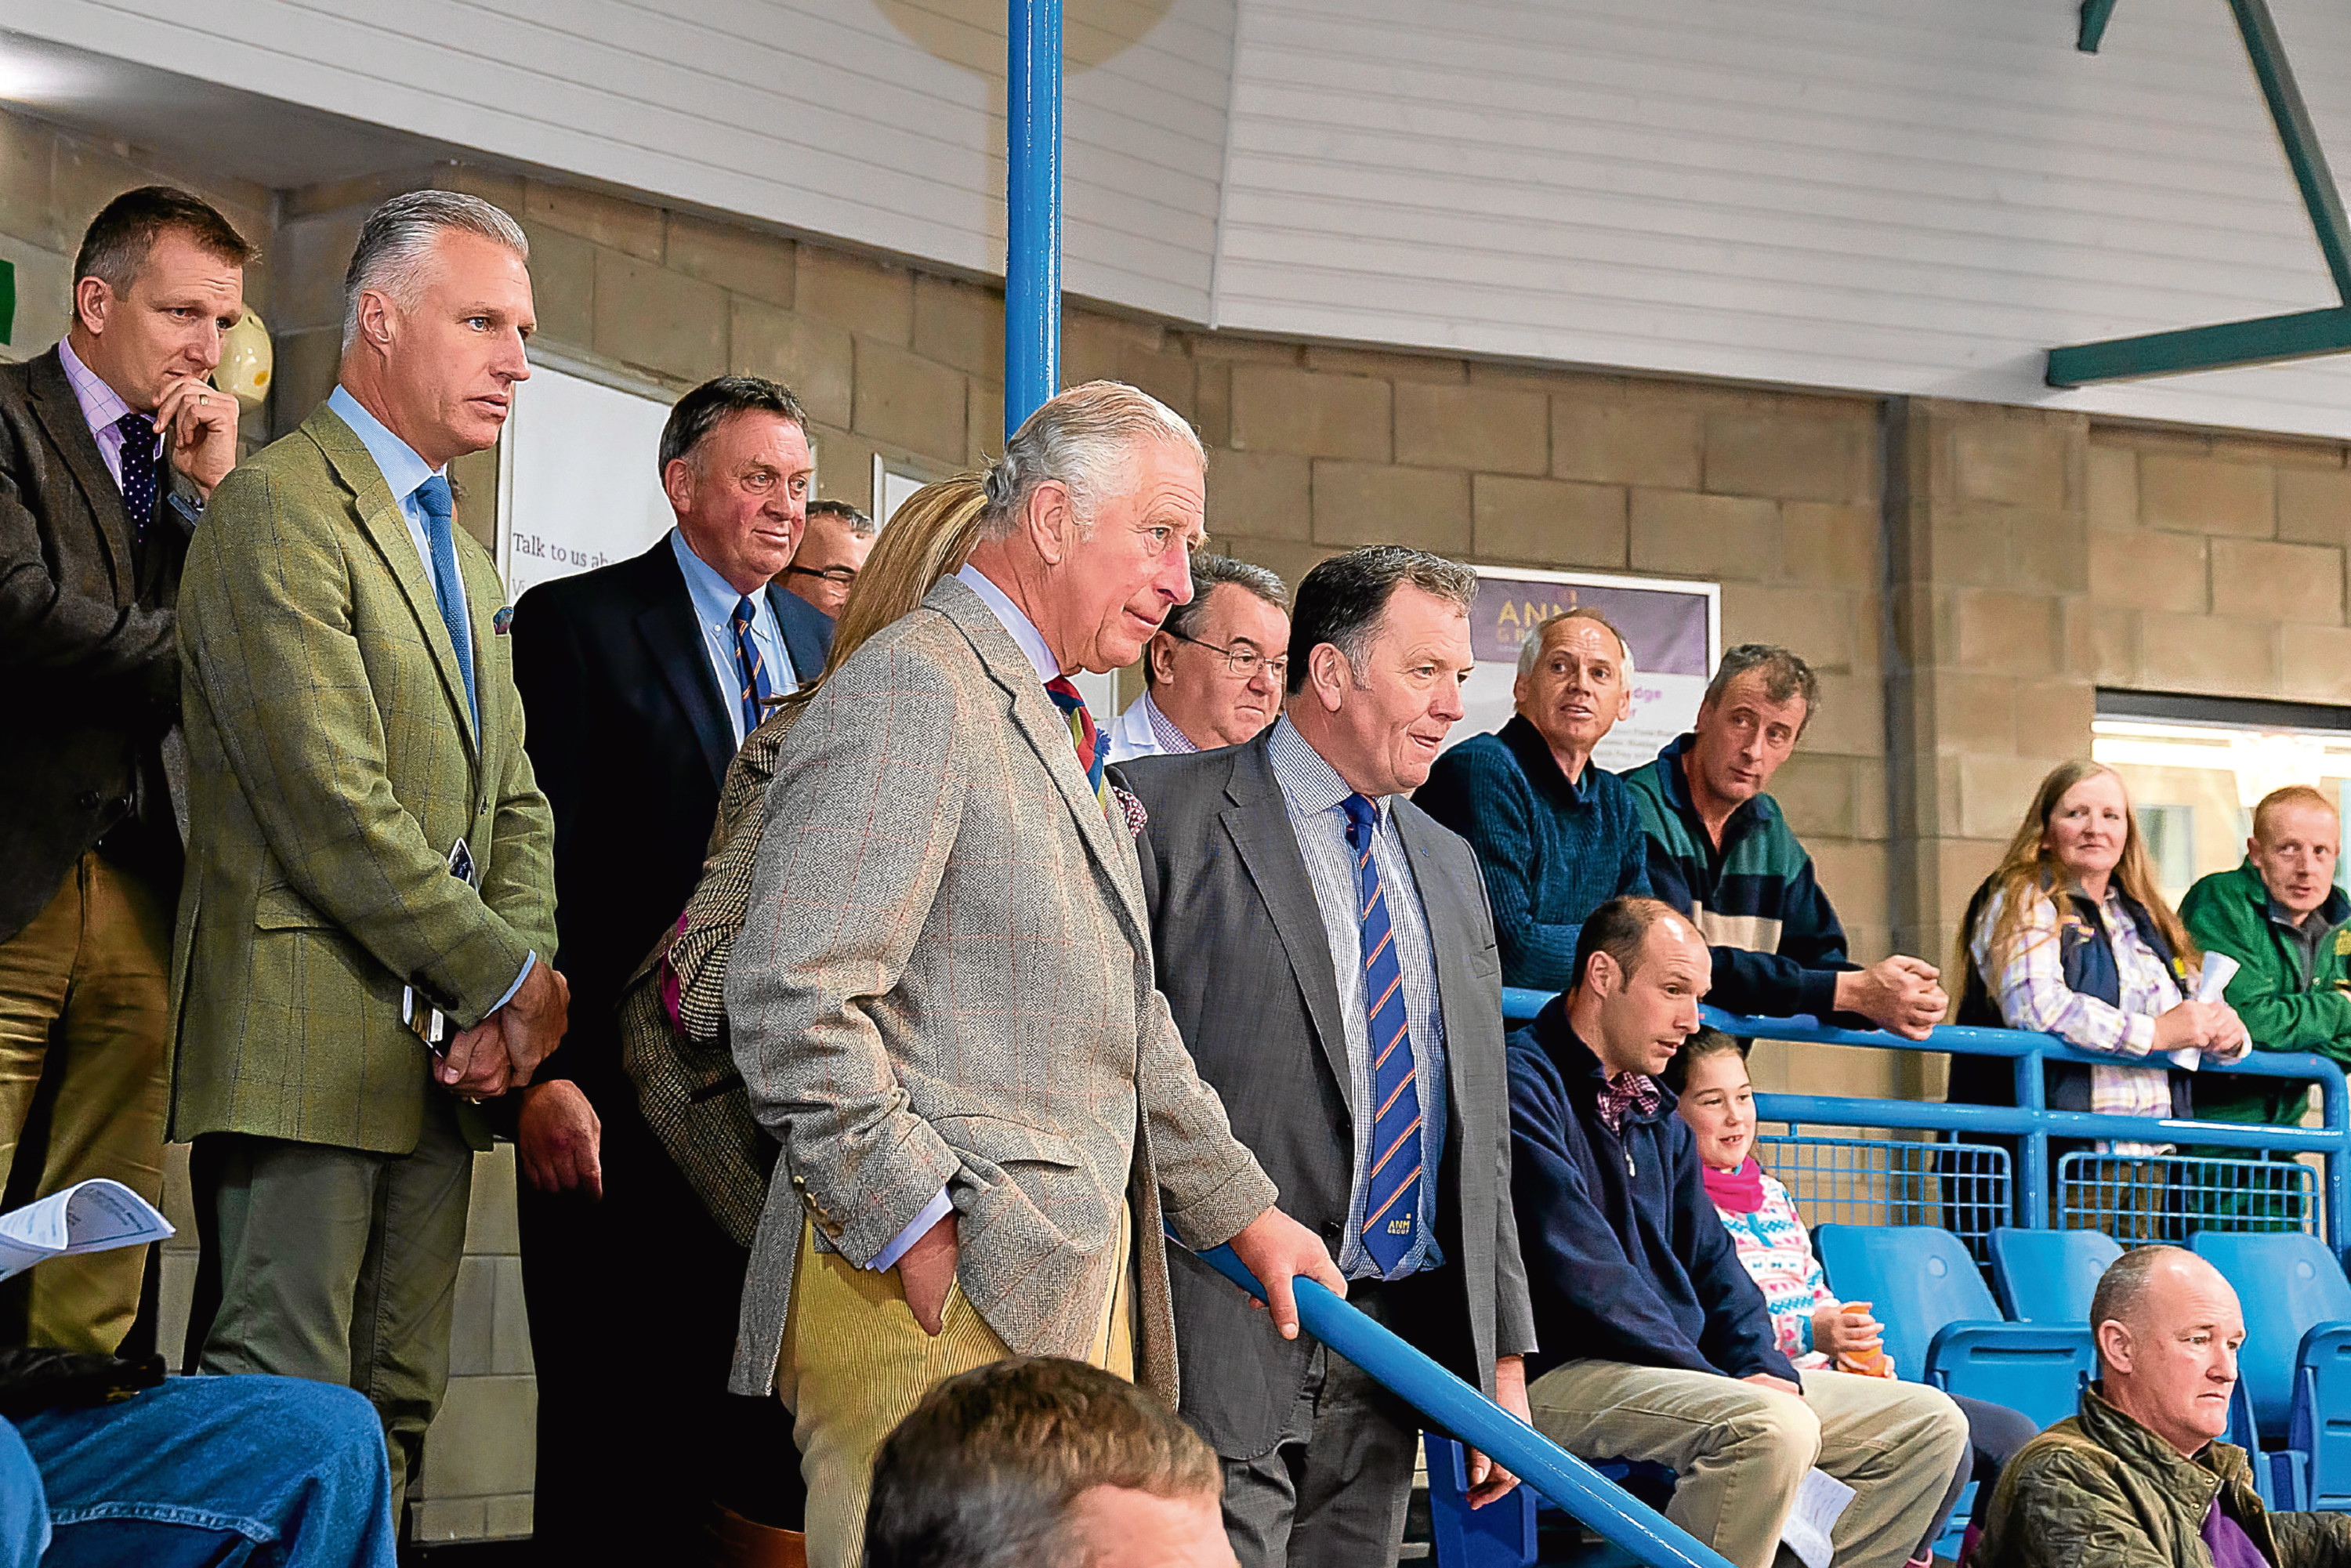 HRH The Duke of Rothesay in the auction ring during a cattle sale at Thainstone Centre Photo credit: Ciro Art Studio